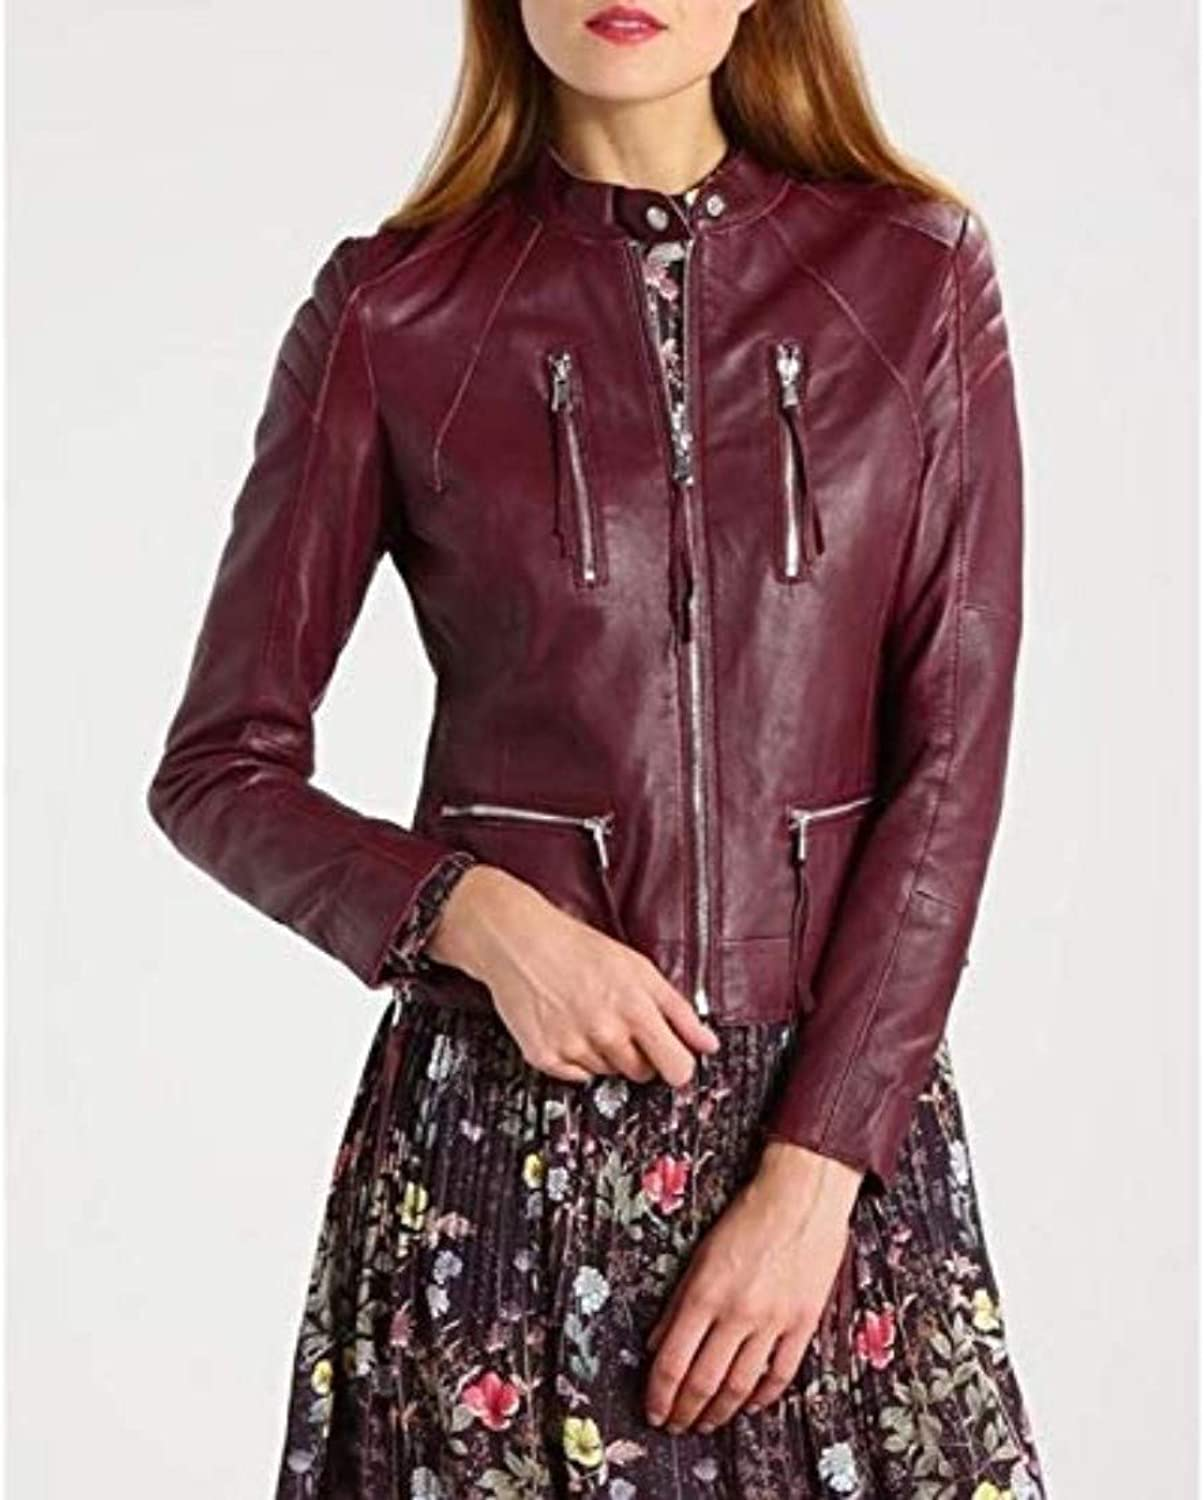 New Fashion Style Women's Leather Jackets Maroon C35_